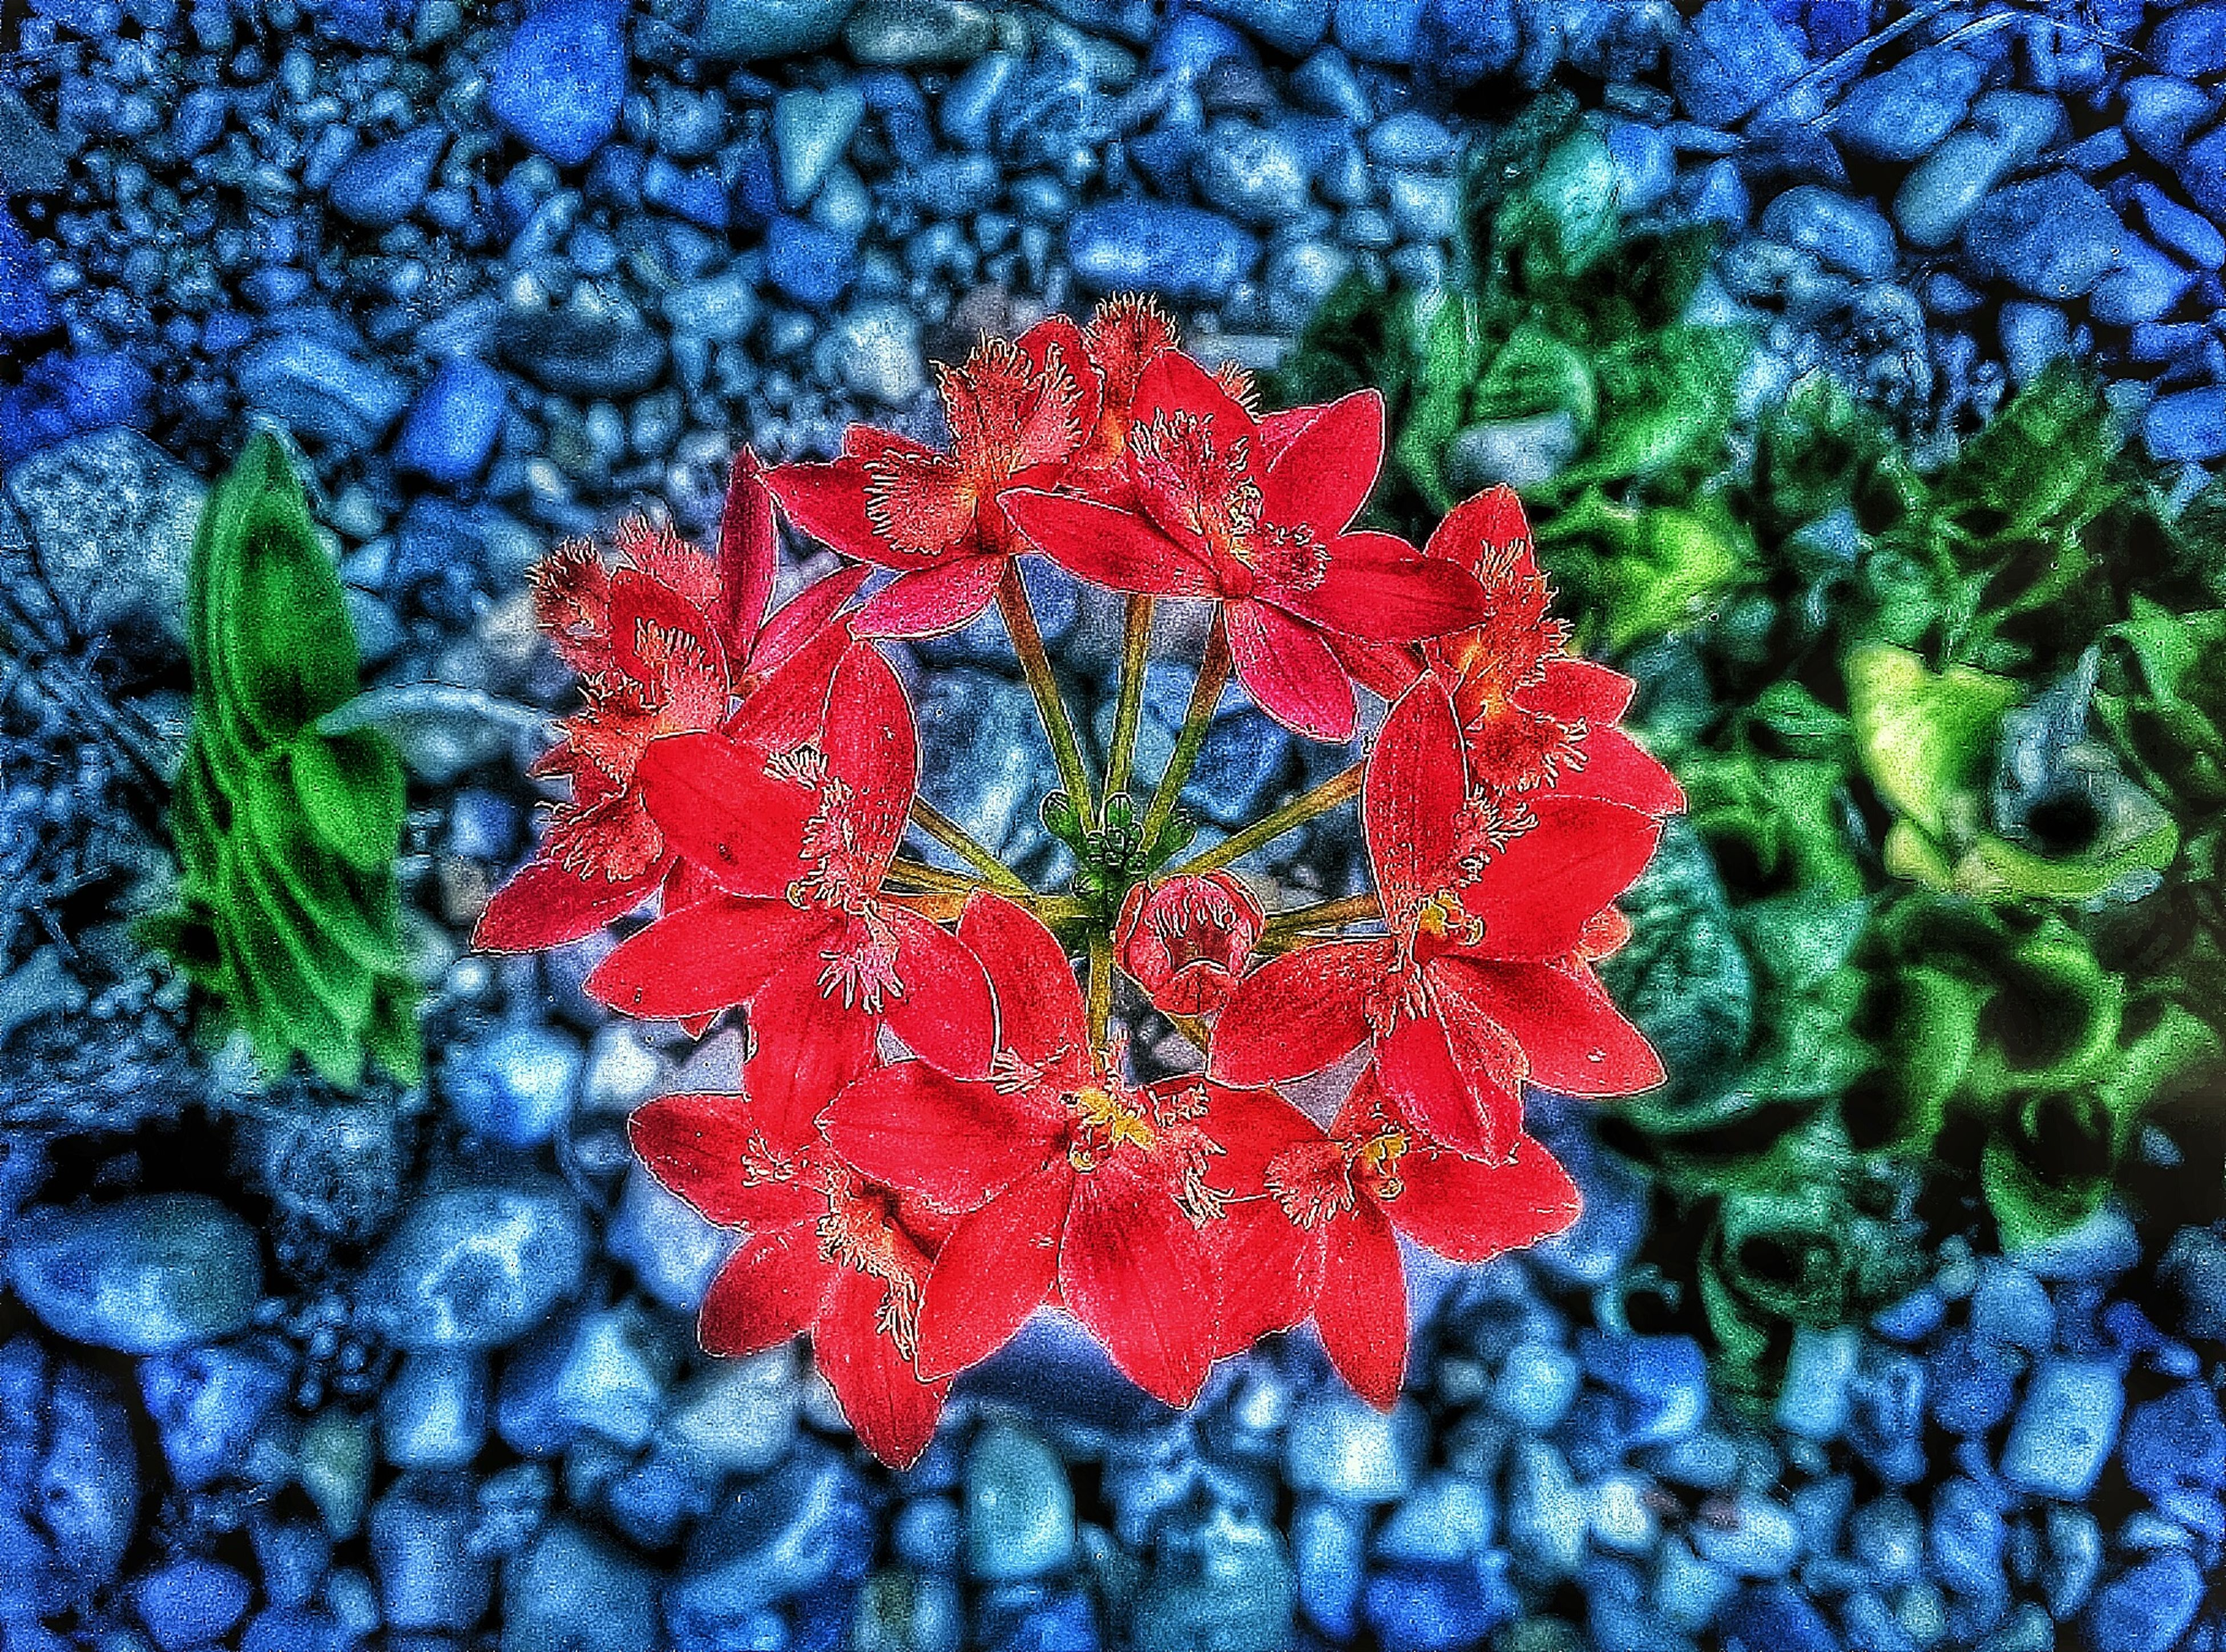 red, fragility, close-up, nature, flower, high angle view, growth, beauty in nature, season, textured, petal, pattern, autumn, full frame, day, leaf, plant, backgrounds, vibrant color, outdoors